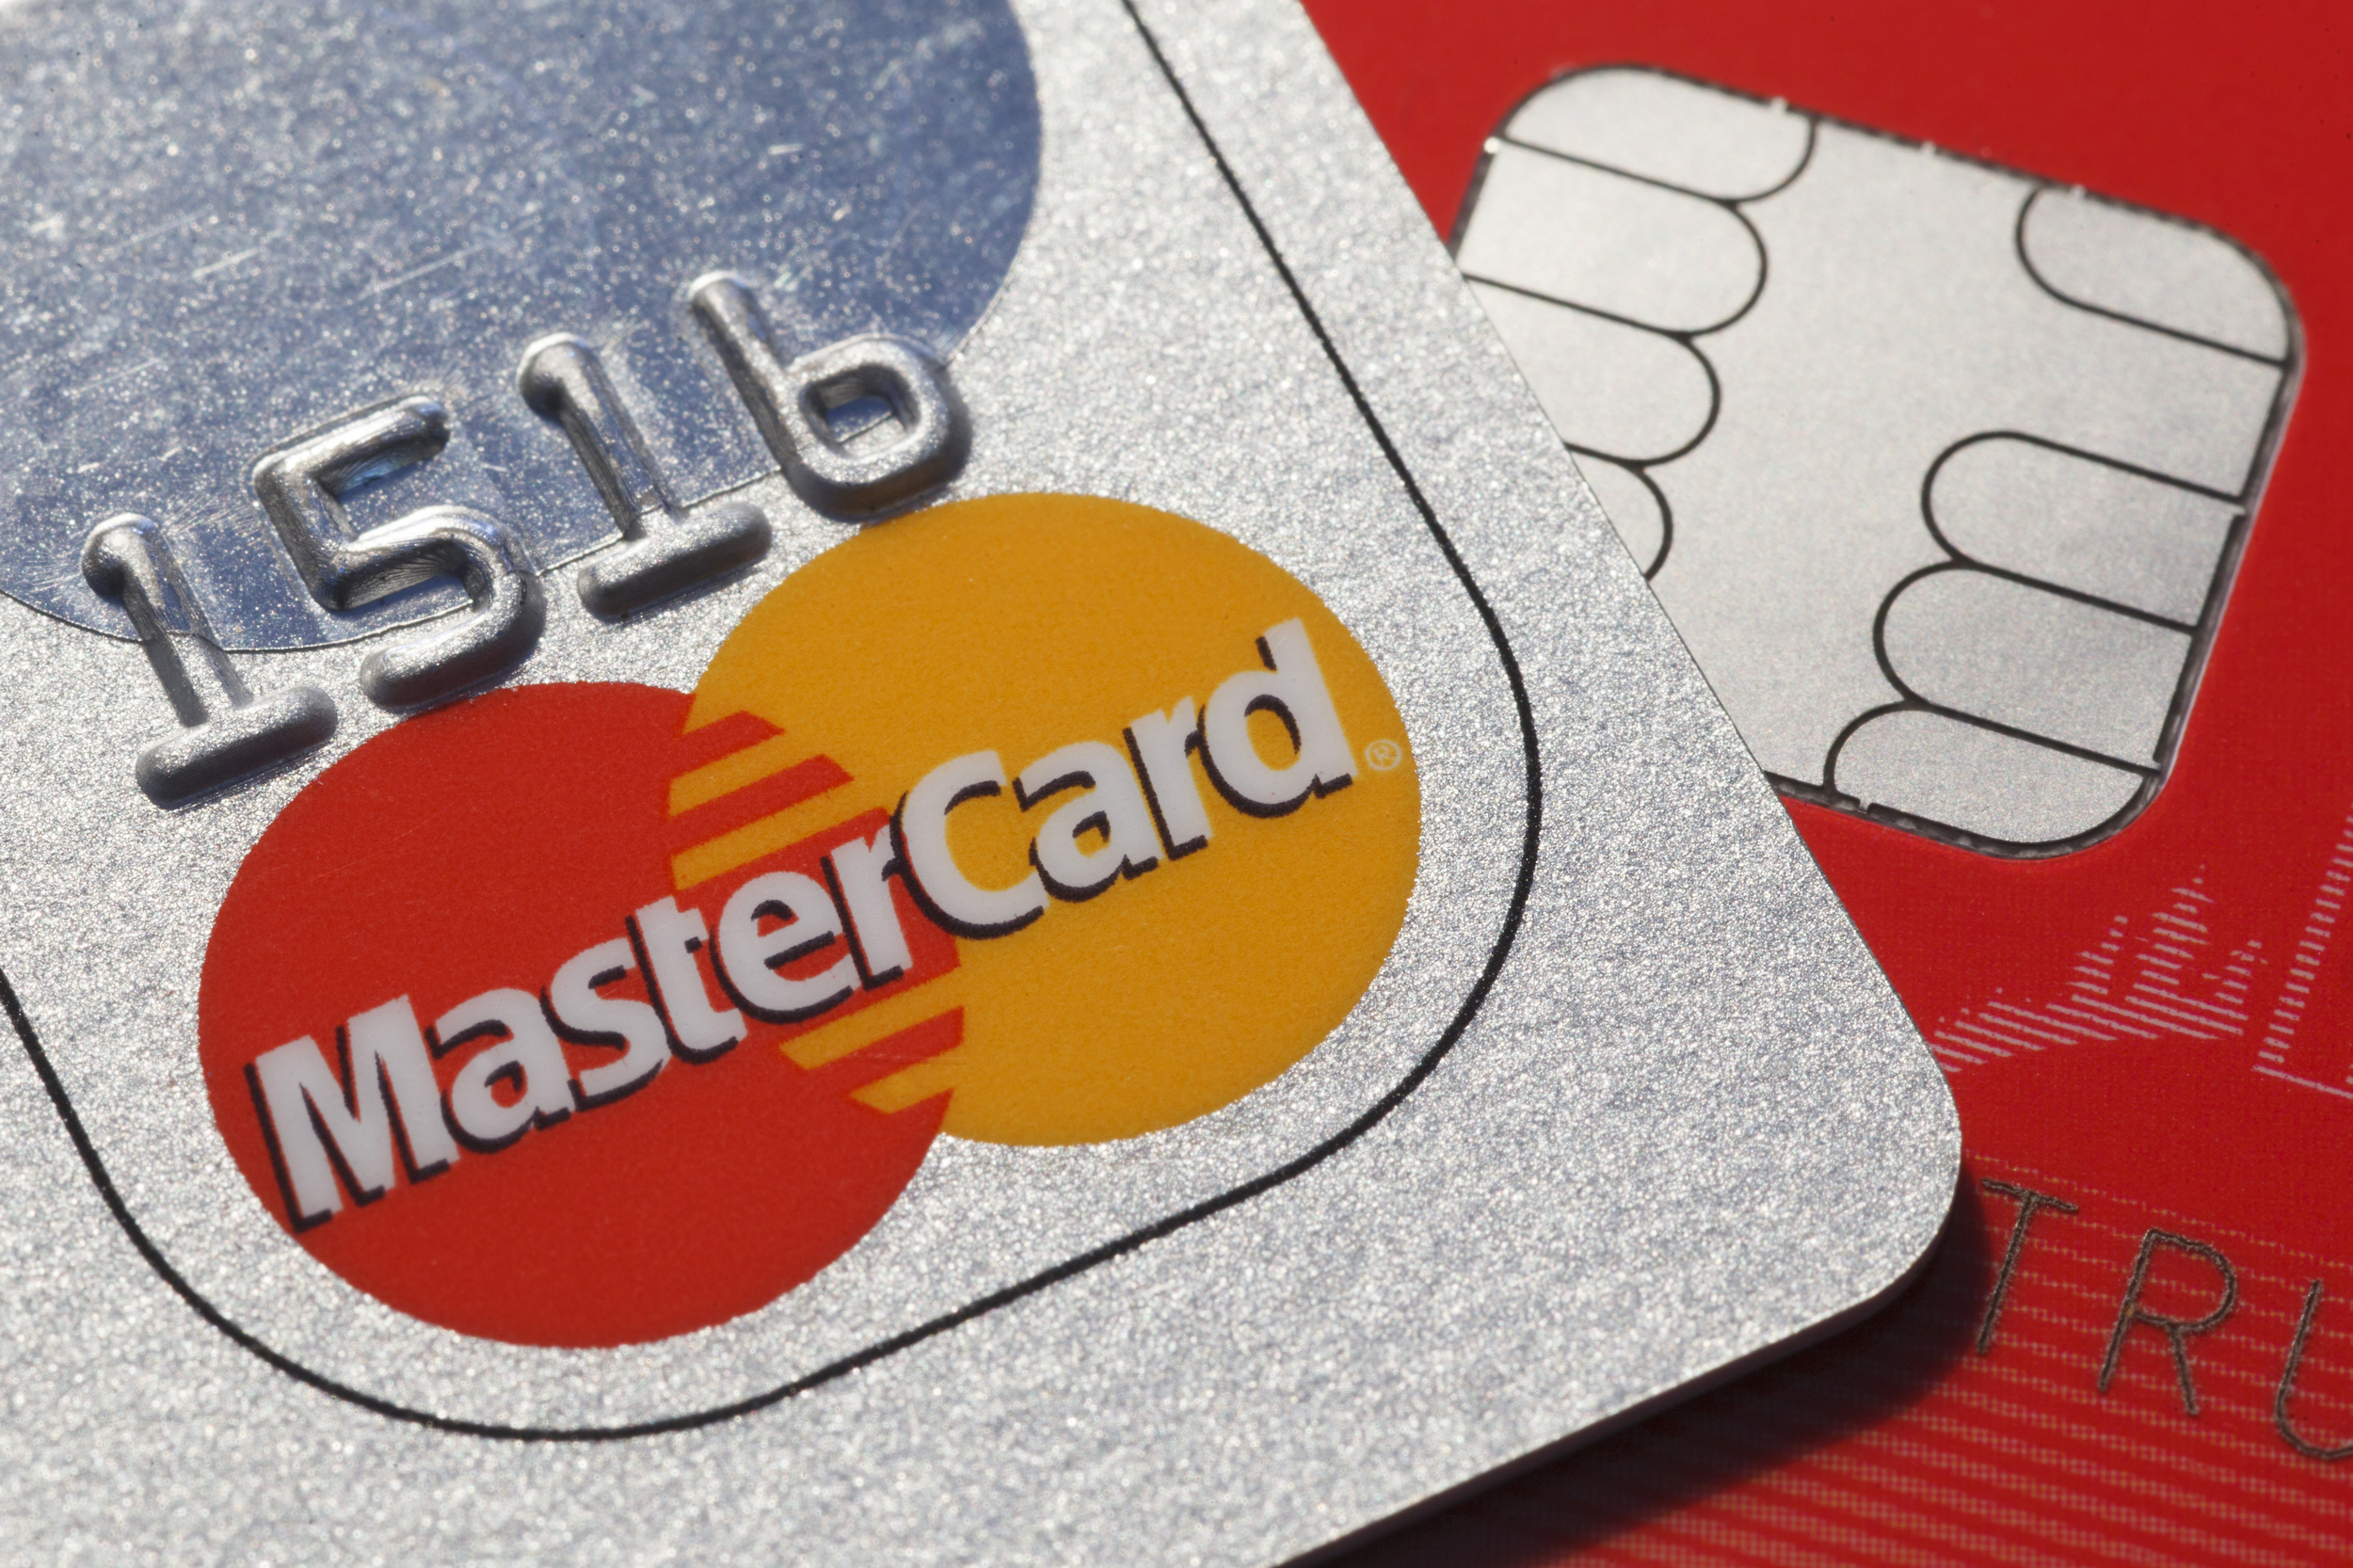 Researchers find security flaw with chip-based credit cards